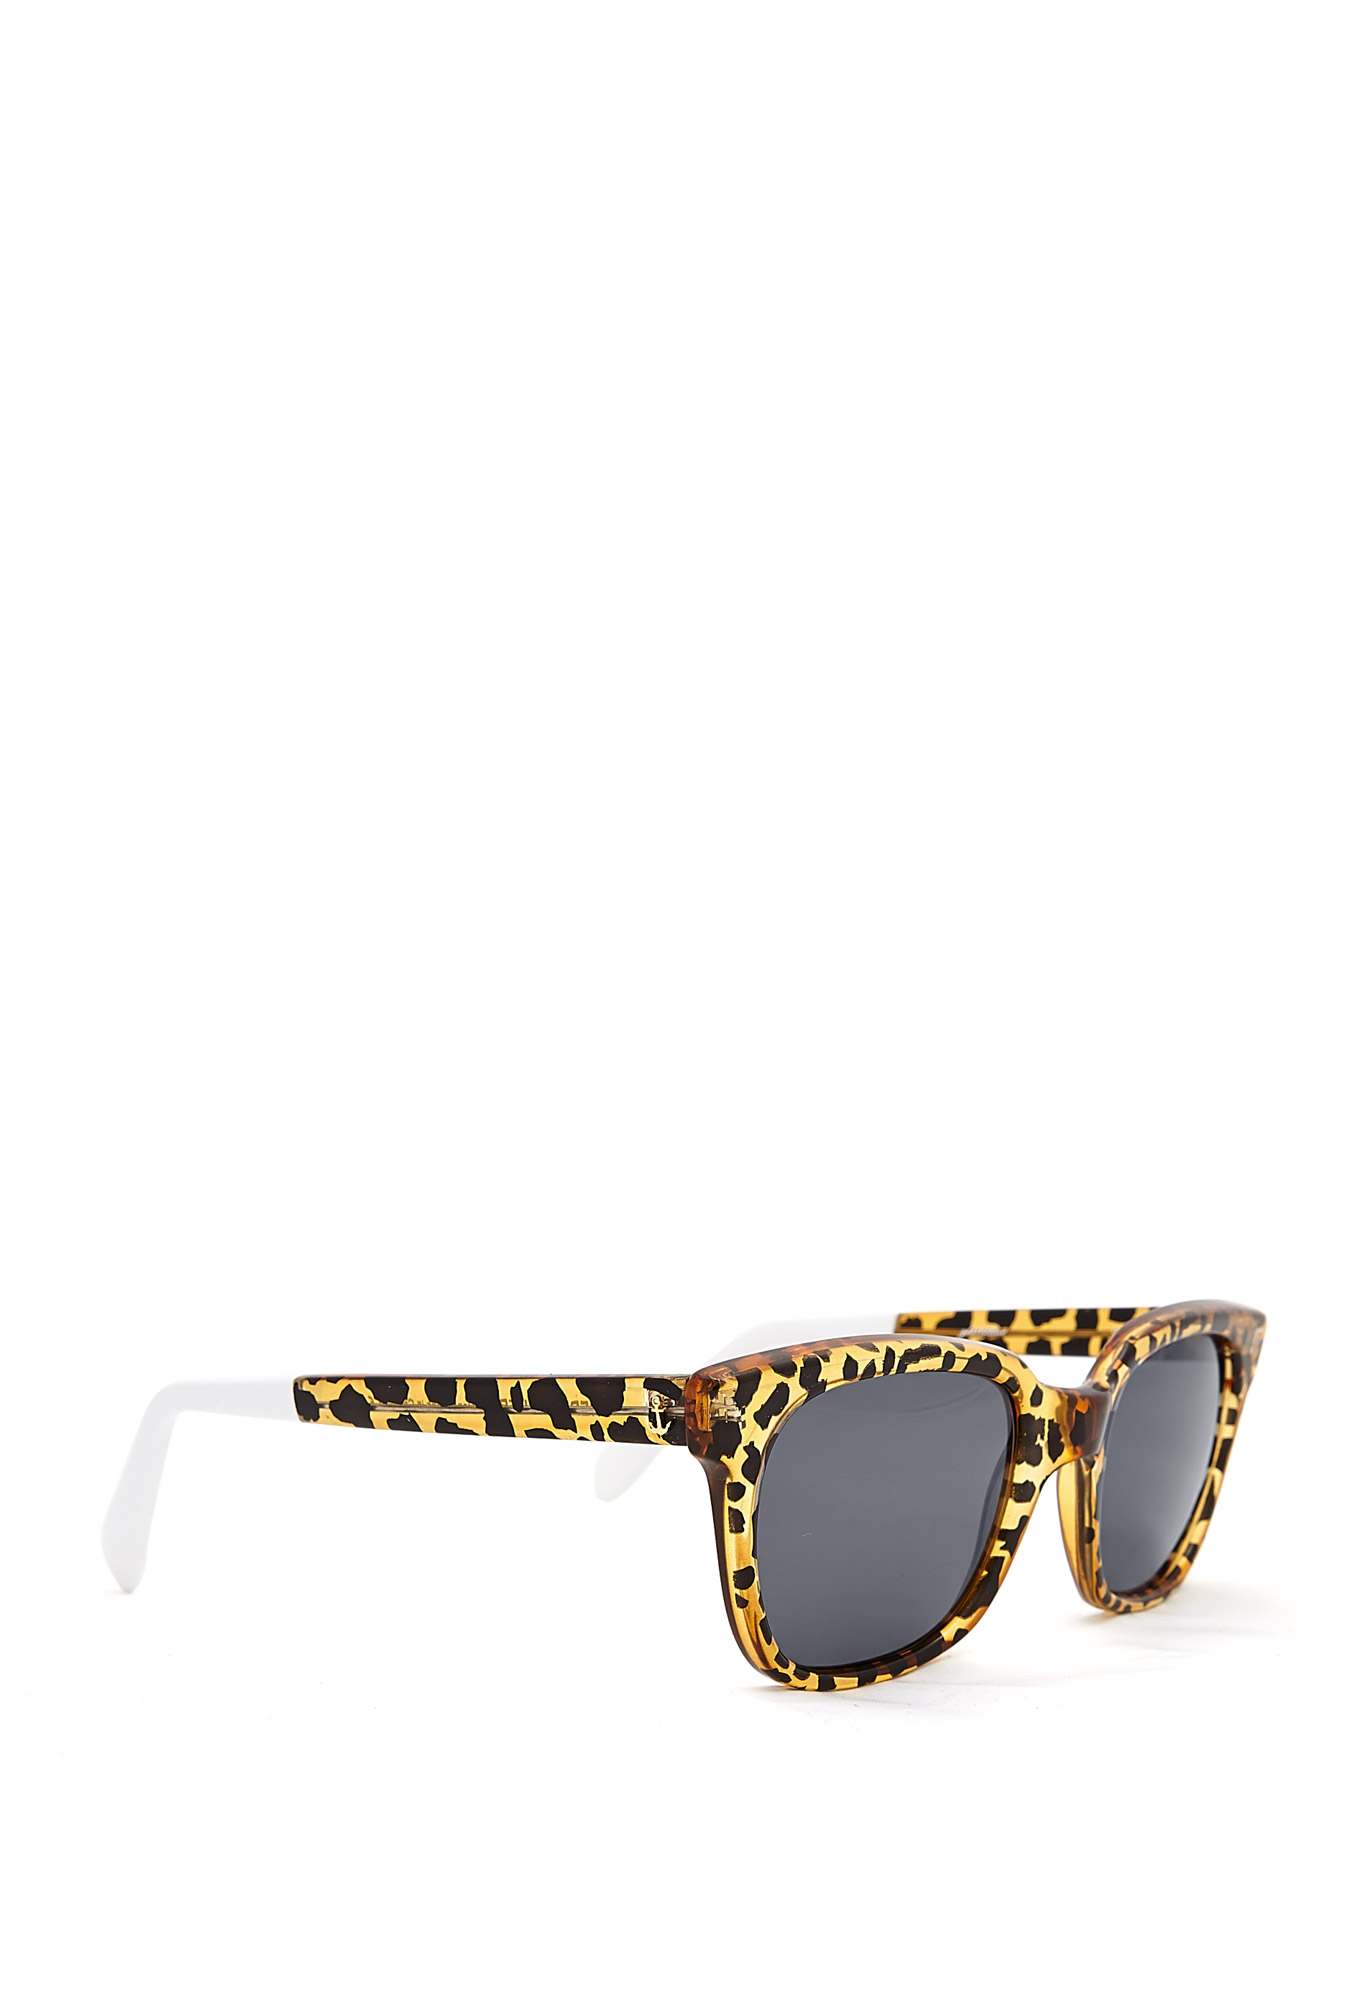 Sheriff & Cherry | Honey Wild Cat Leopard Plastic Sunglasses by Sheriff & Cherr